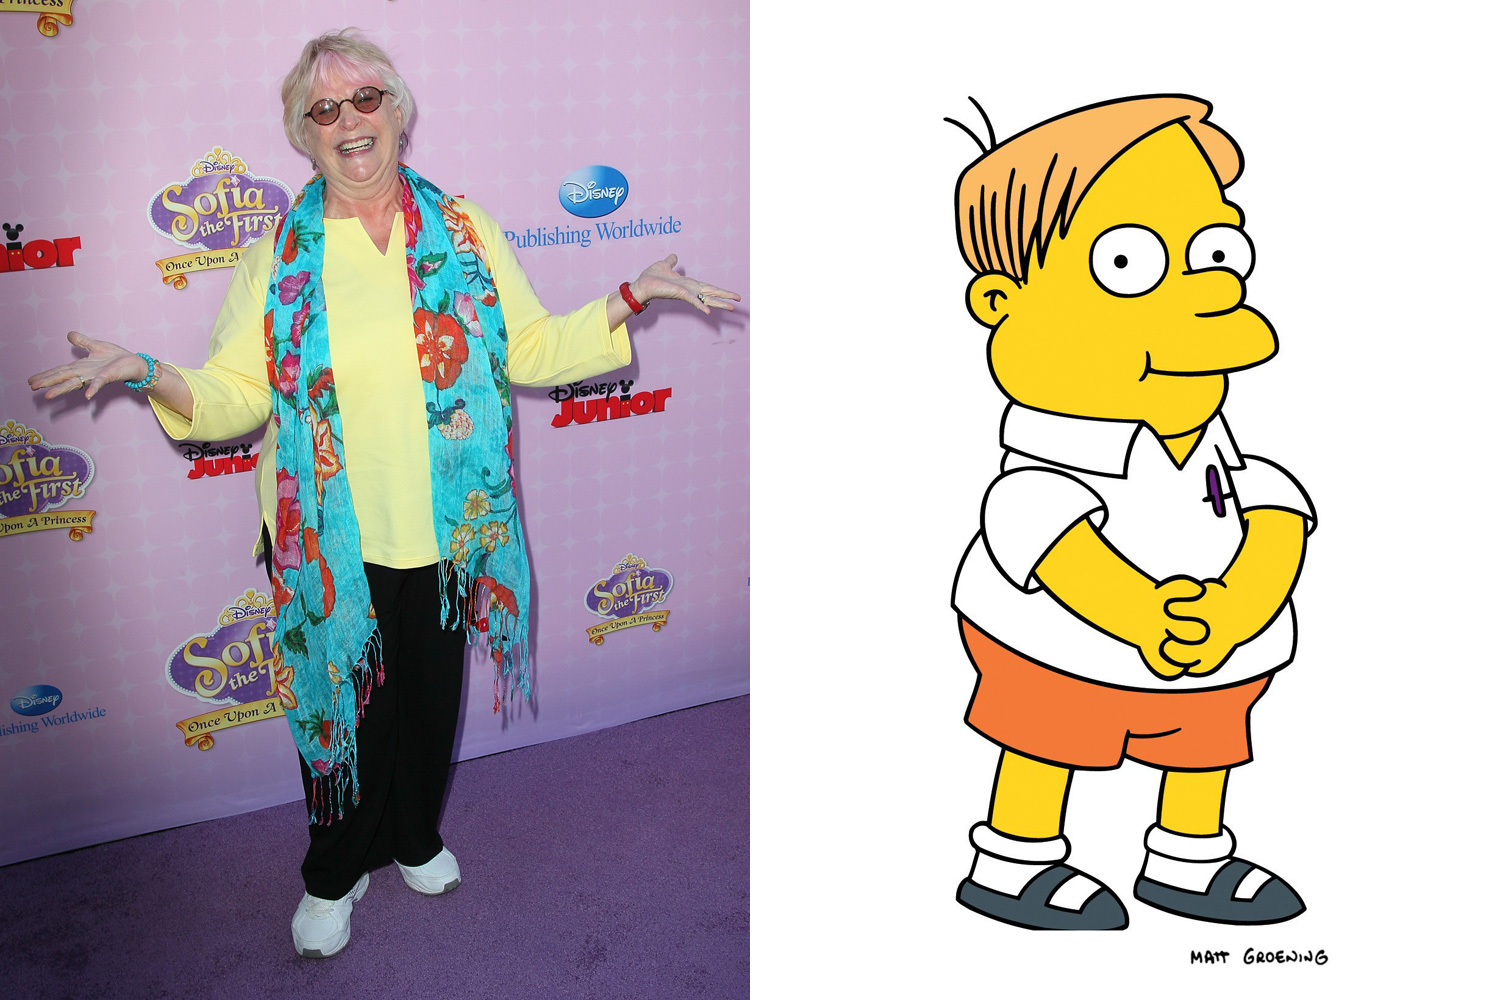 Russi Taylor voiced some of the kids at Springfield Elementary such as Martin Prince, Terri and Sherri, and German exchange student Üter Zörker.